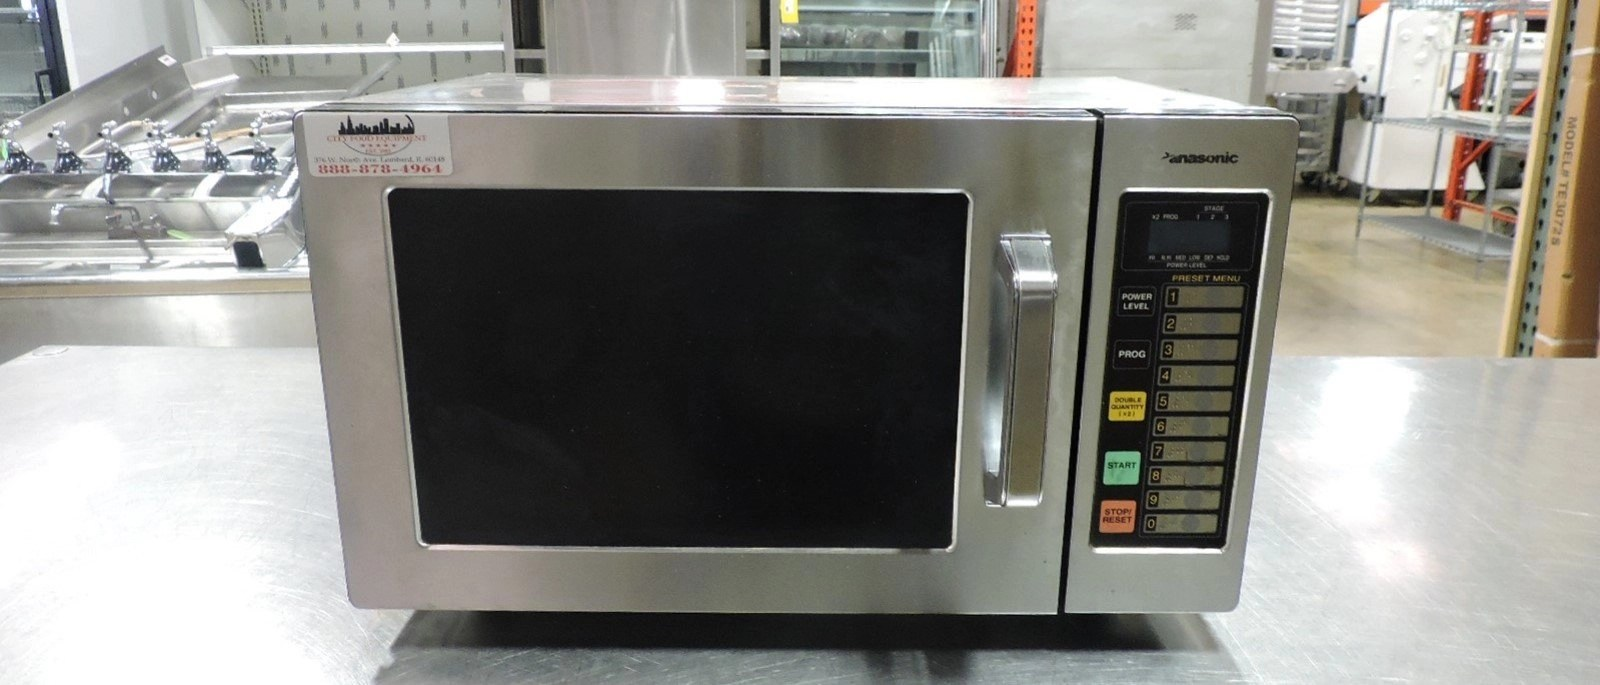 best commercial microwaves review for